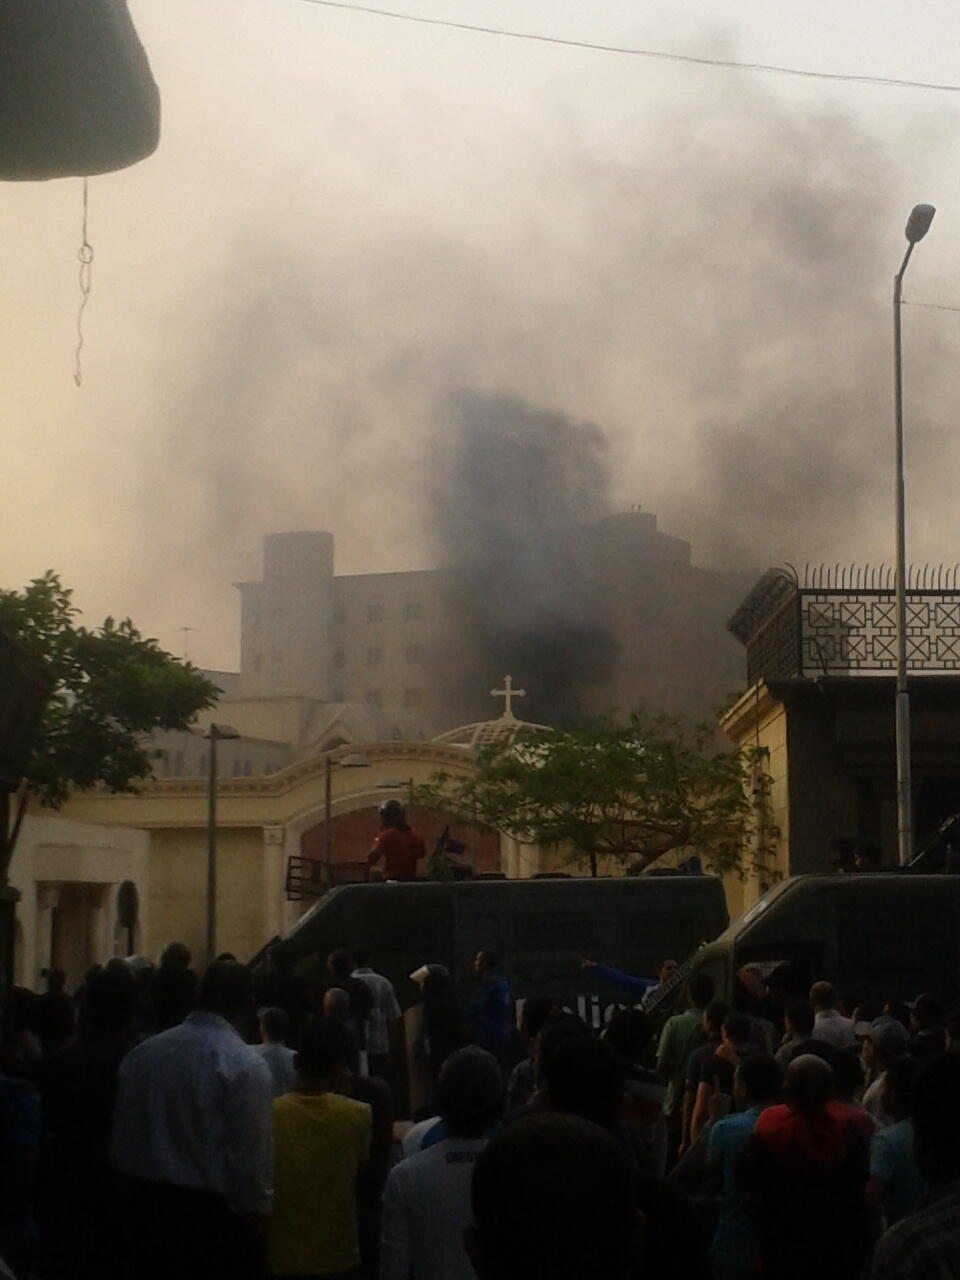 Twitter / Alastair_Beach: Fire inside cathedral compound ...